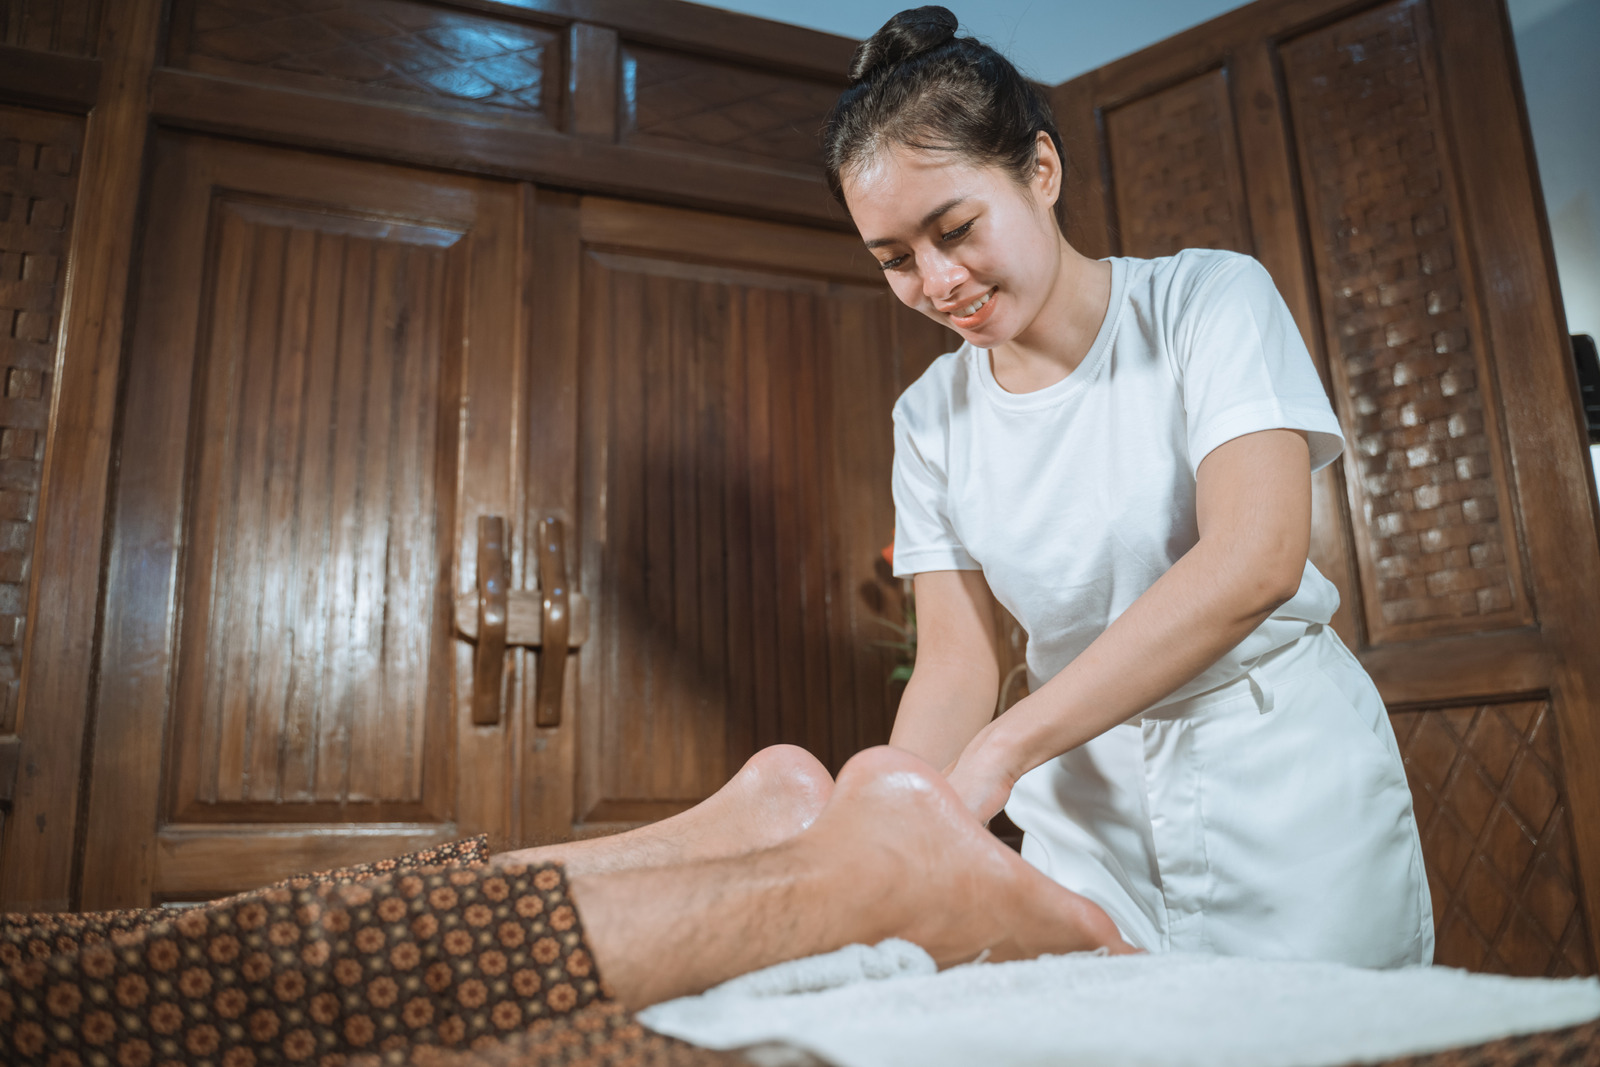 s2 2 2 Why a foot massage is so important for women